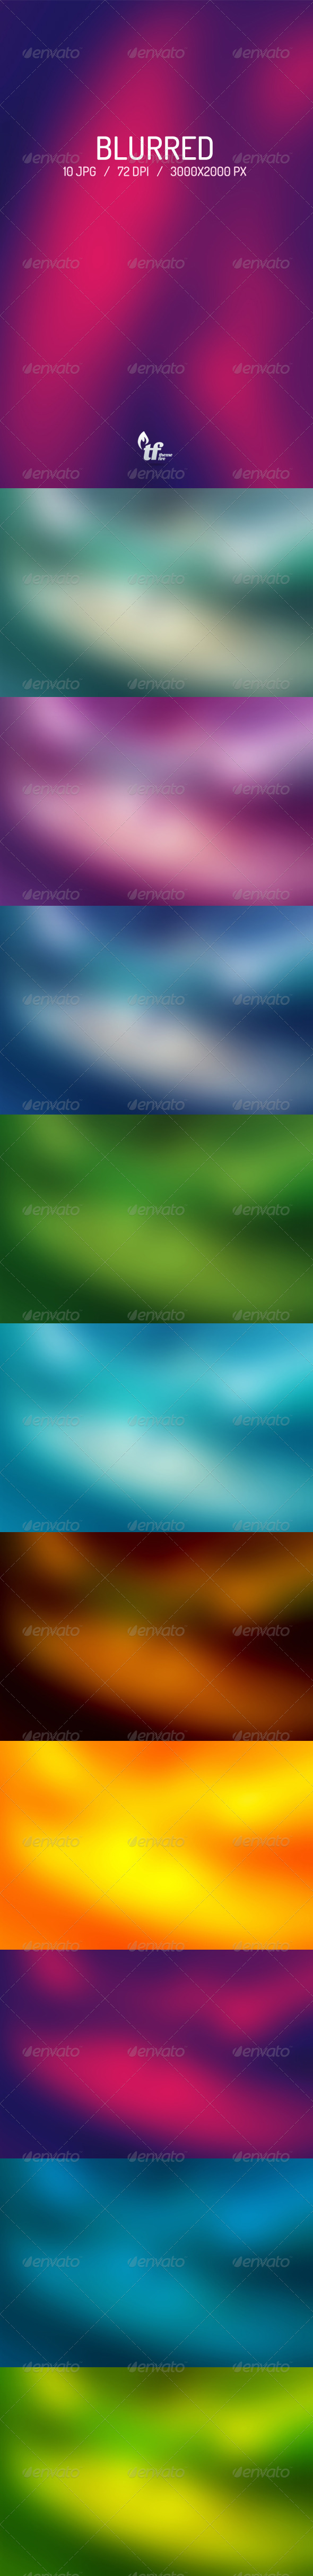 Blurred Backgrounds - Abstract Backgrounds